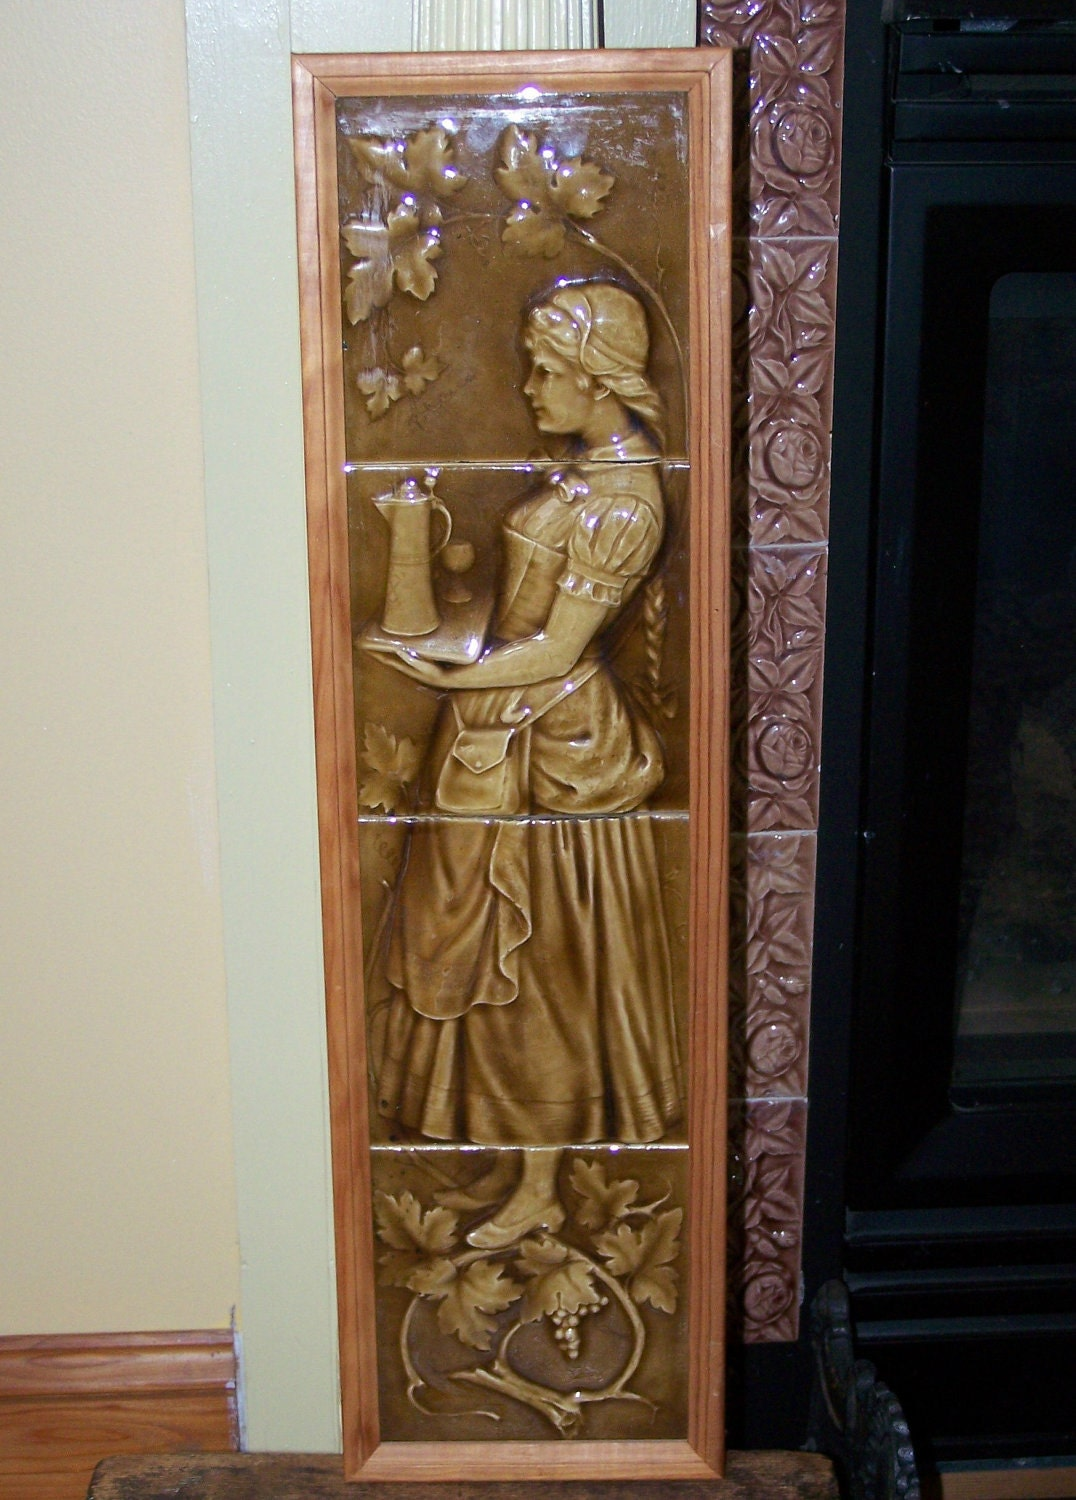 Antique Fireplace AETCo Majolica 6 X 6 Tiles Full Figure